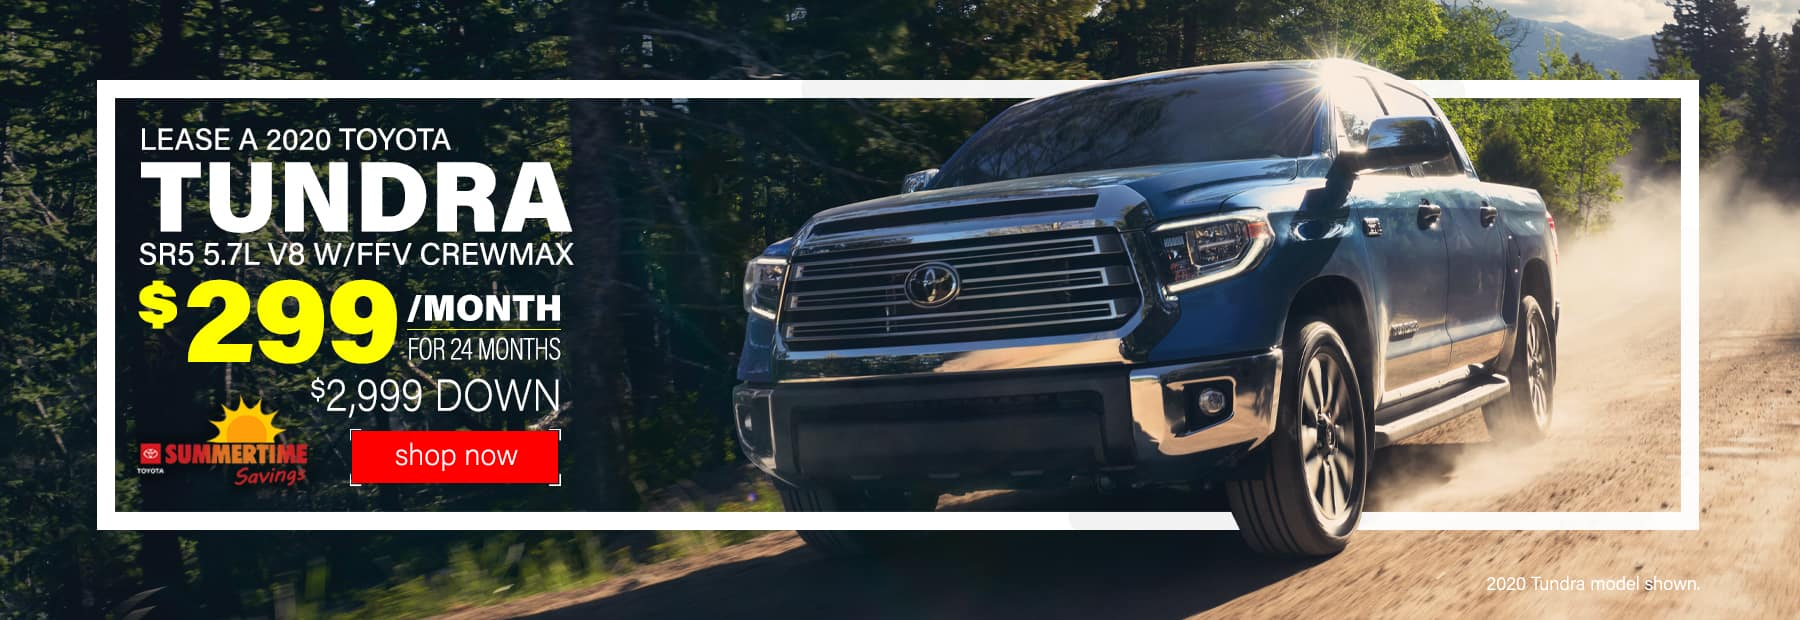 Lease a 2020 Toyota Tundra SR5 5.7L V8 w/FFV CrewMax 4x4 Pickup Truck for $299/mo. for 24 mos. with $2,999 down